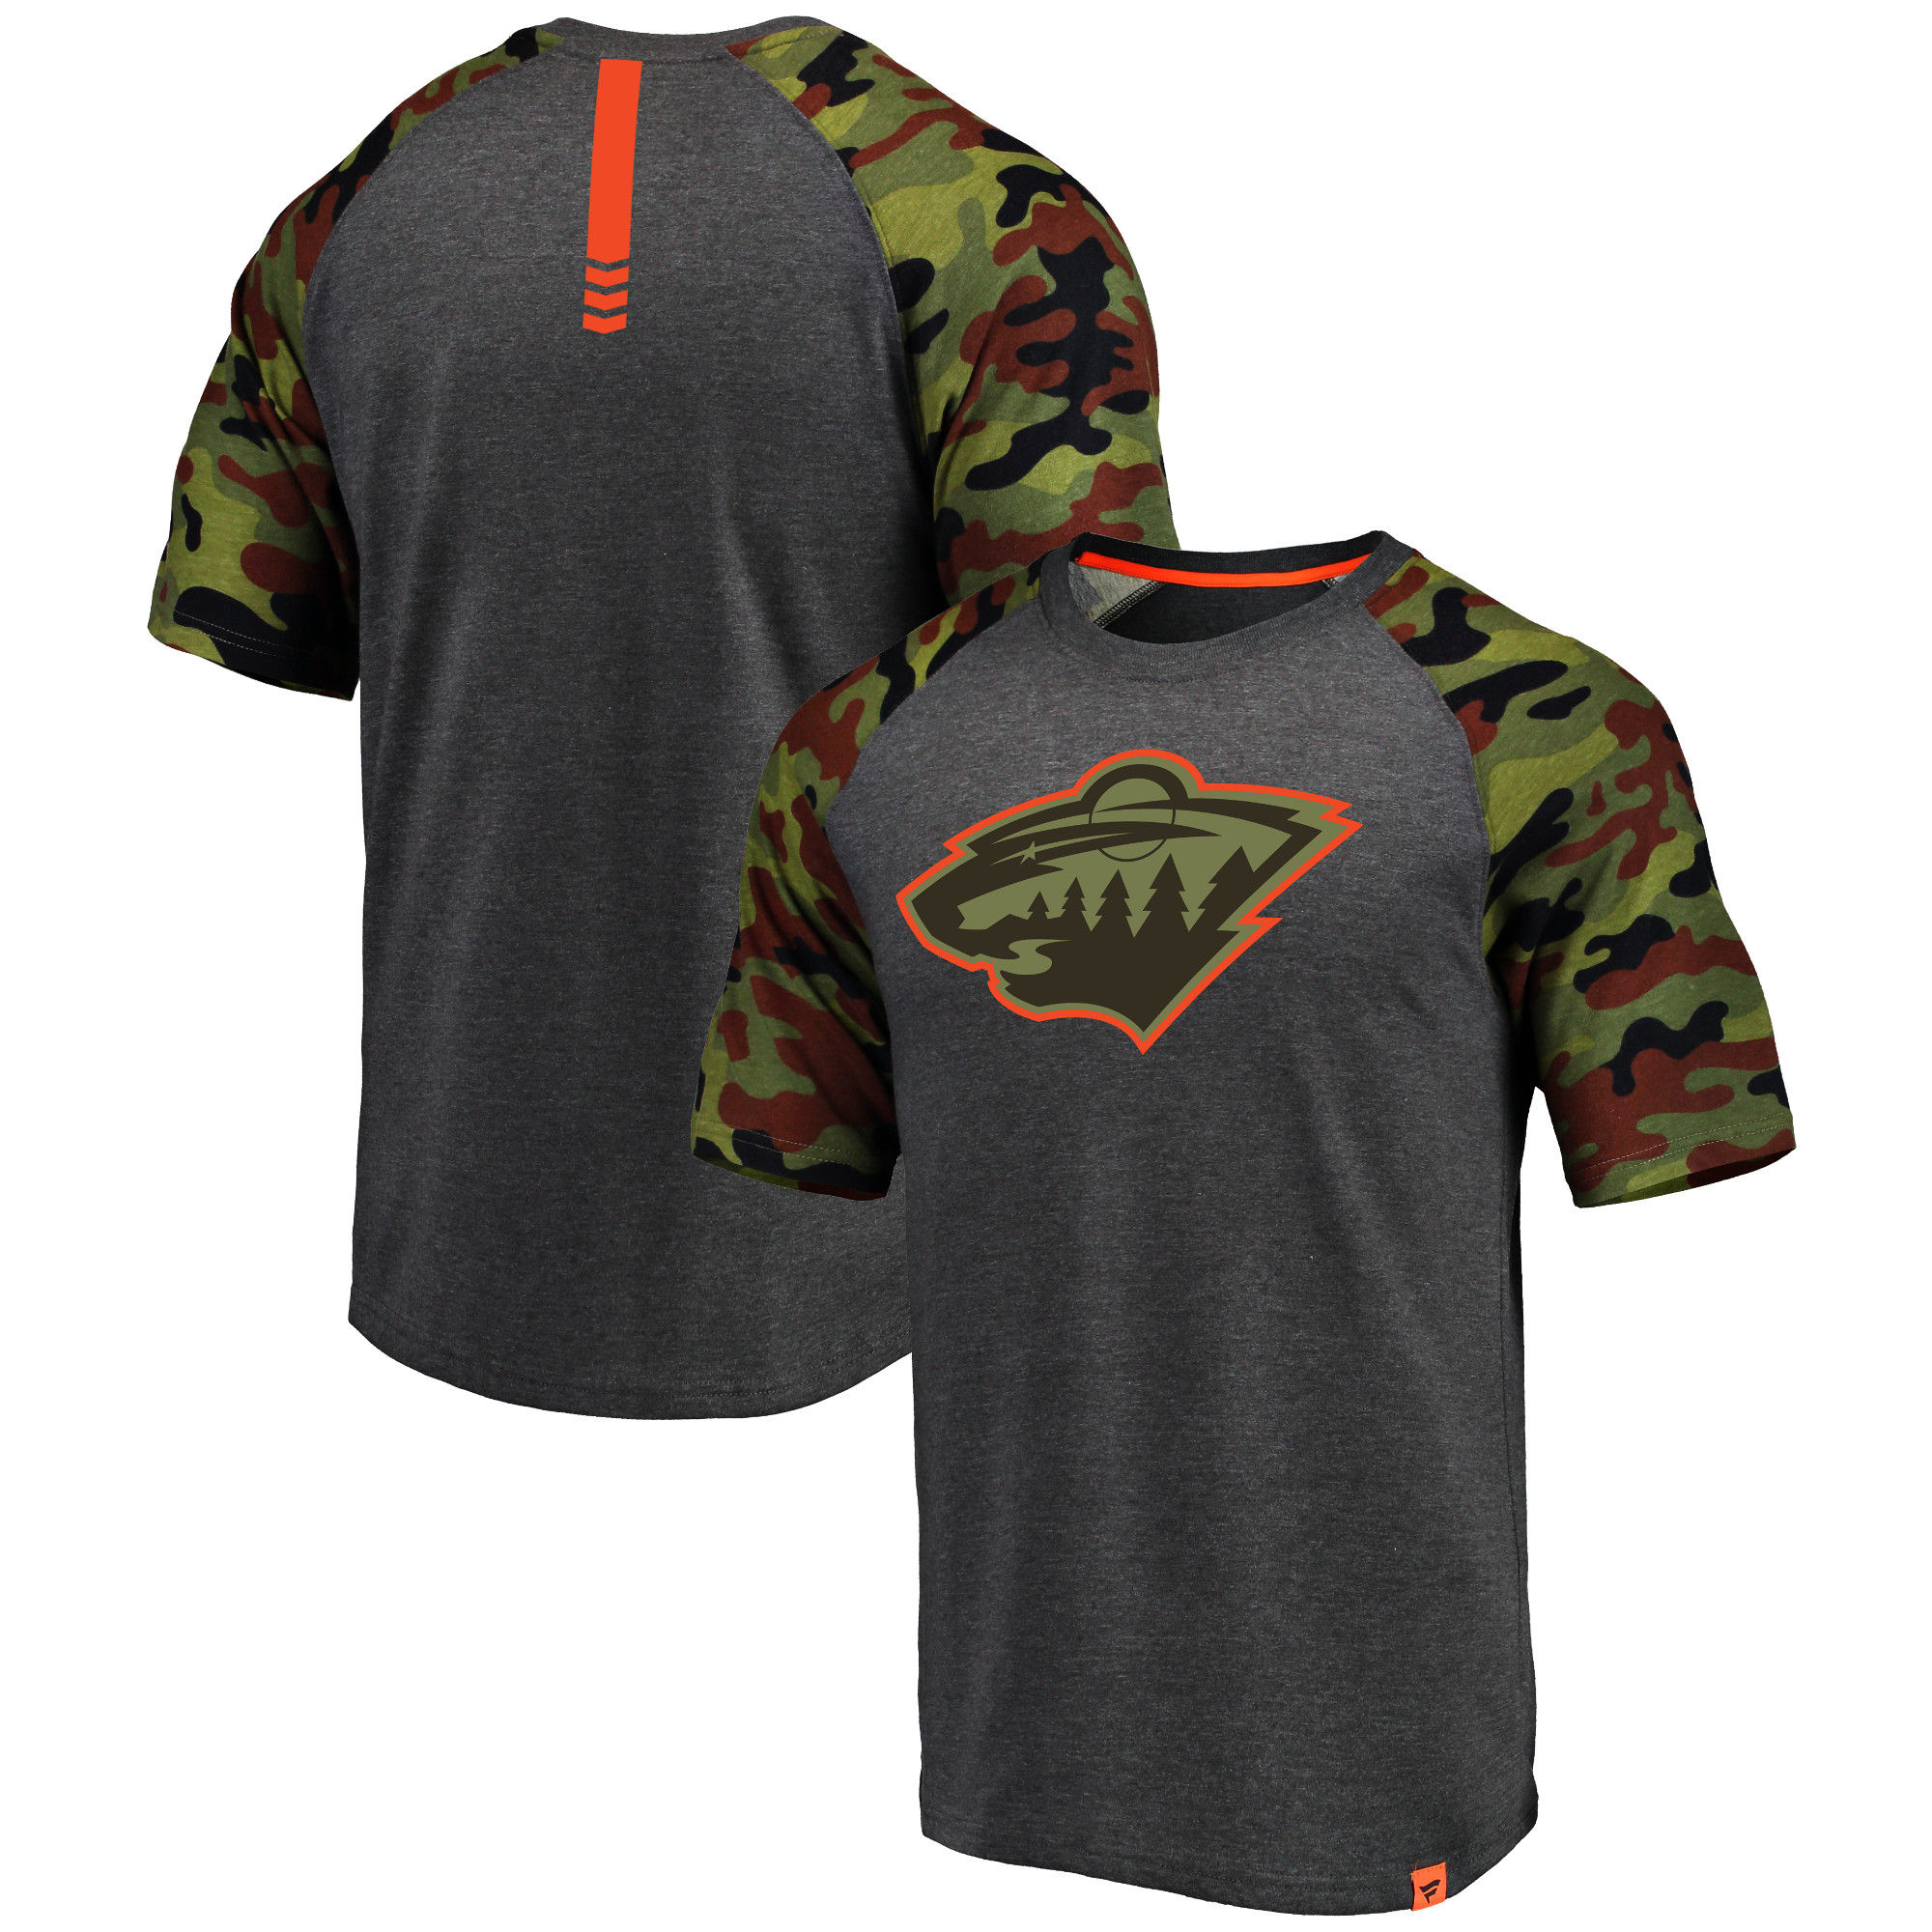 Minnesota Wild Fanatics Branded Heathered Gray/Camo Recon Camo Raglan T-Shirt